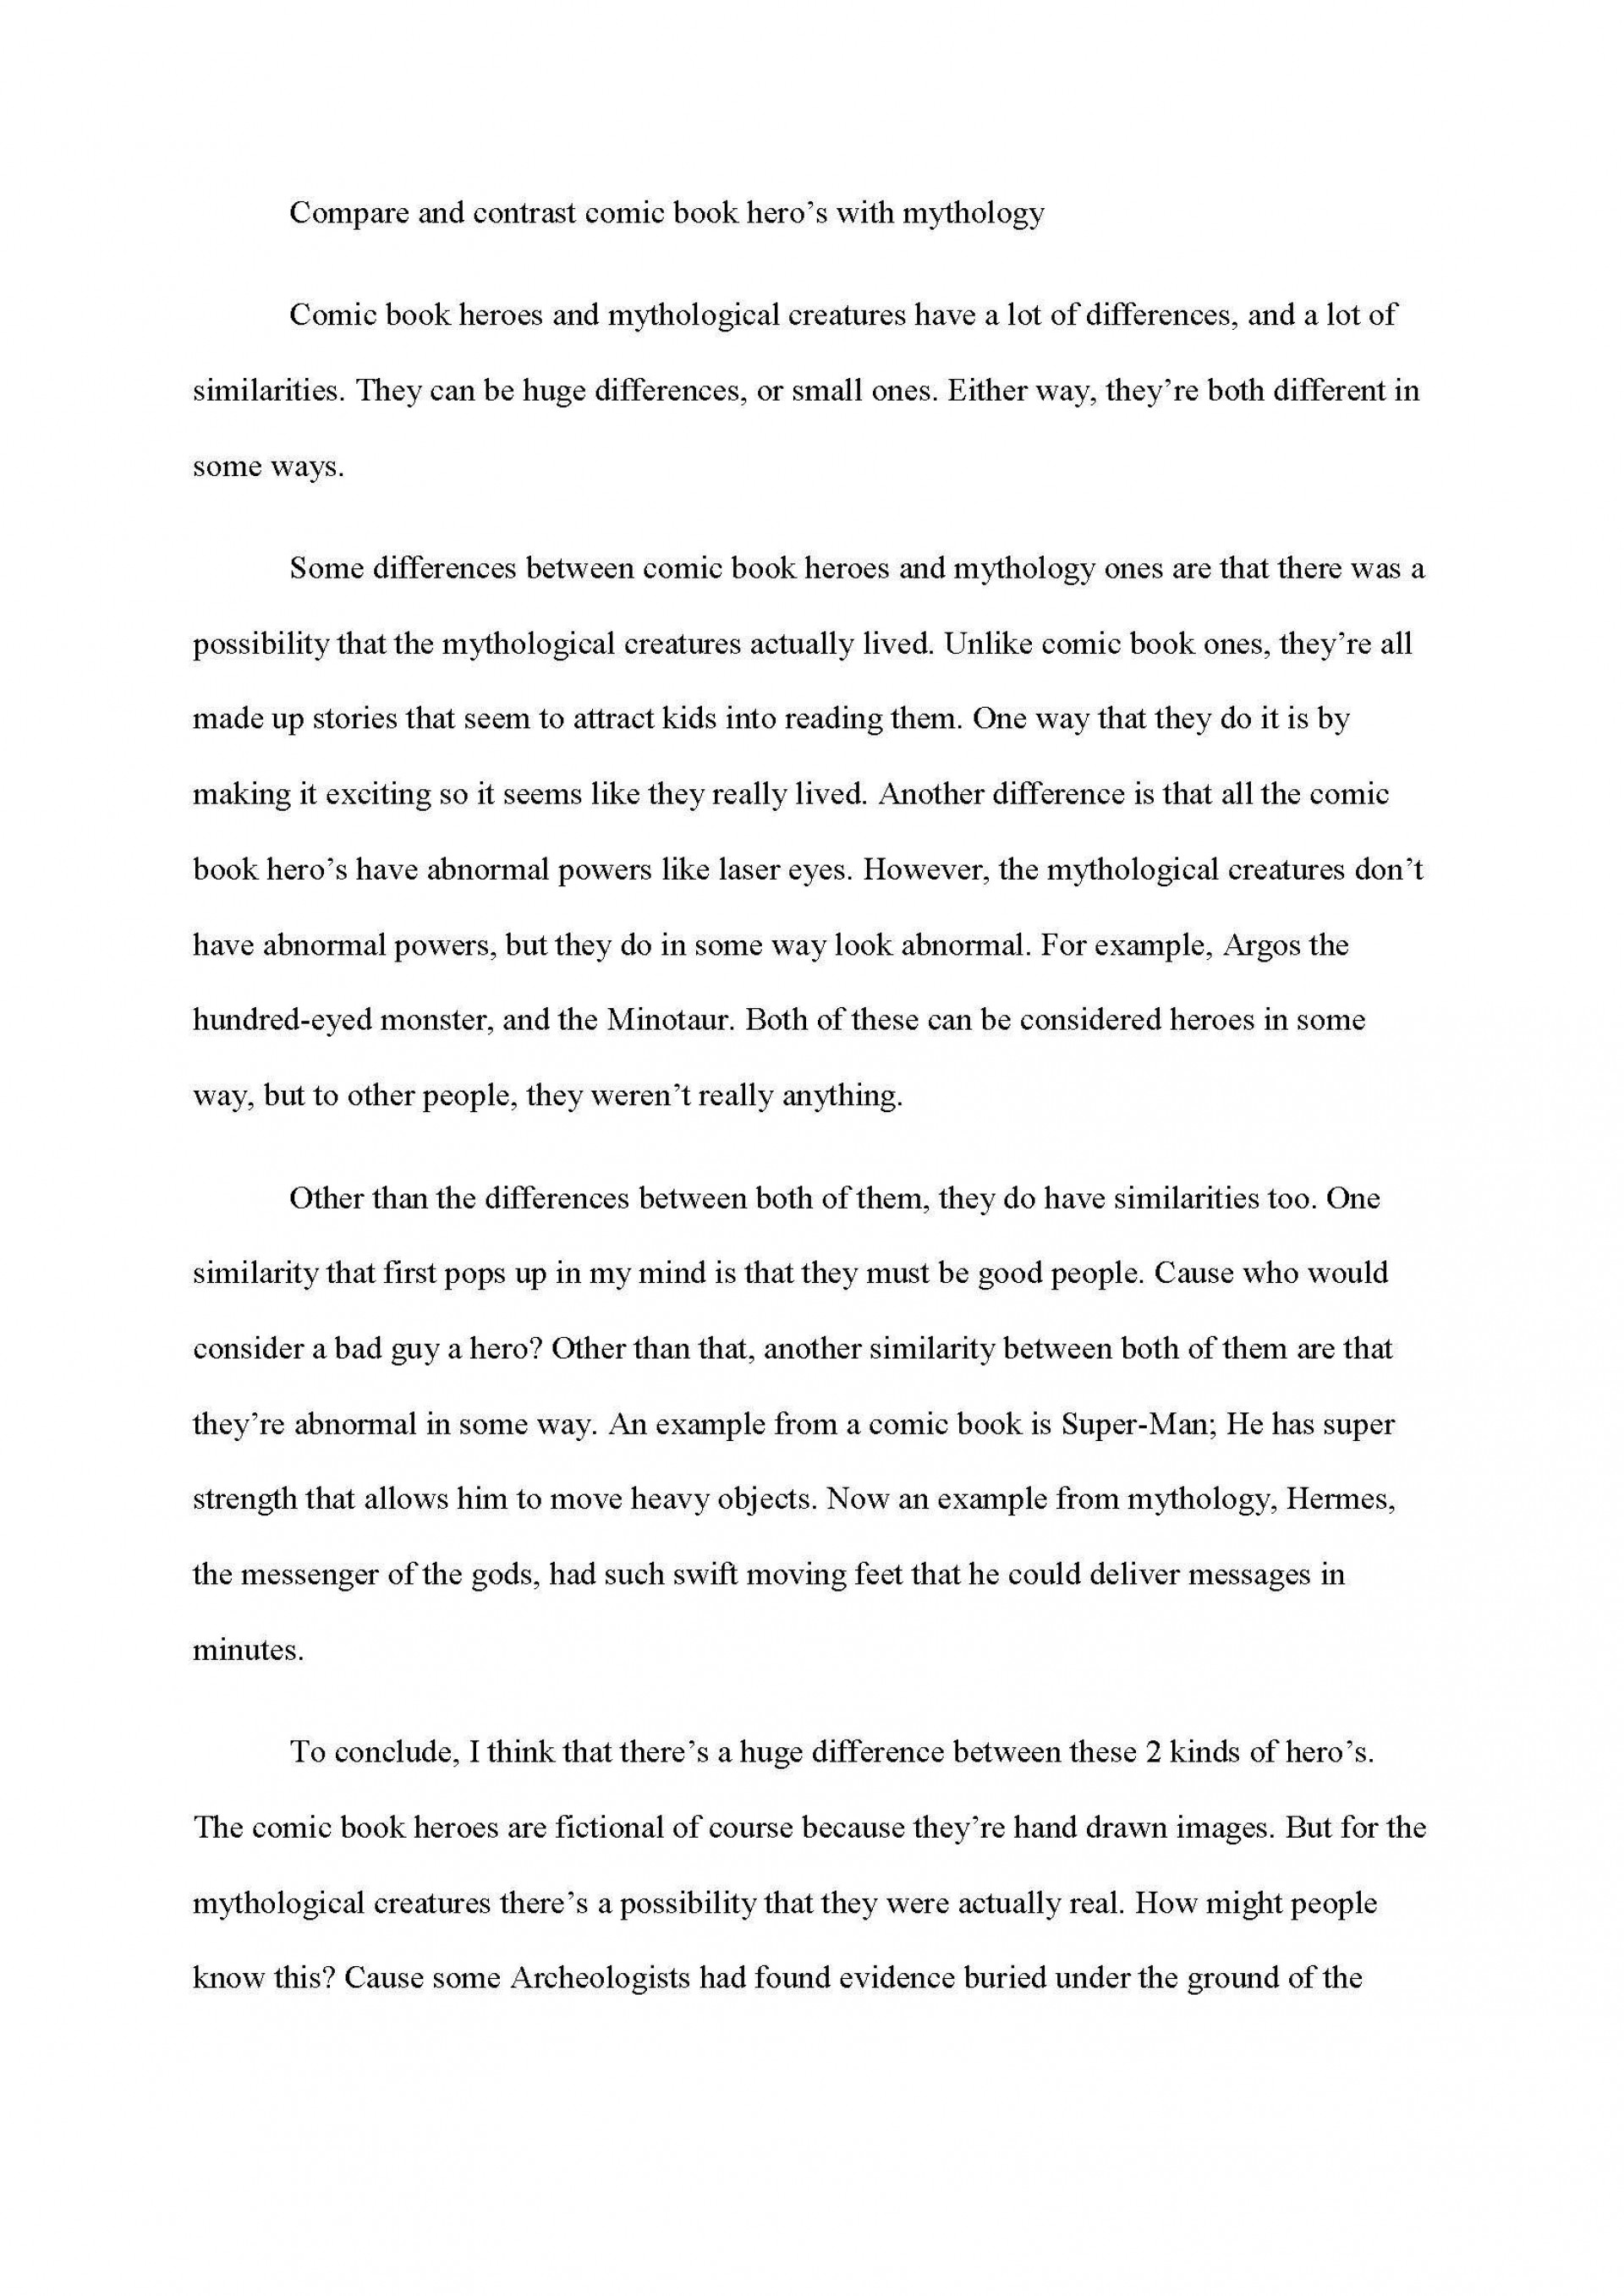 001 Exceptional Compare And Contrast Essay Example College Picture  For Topic Outline1920